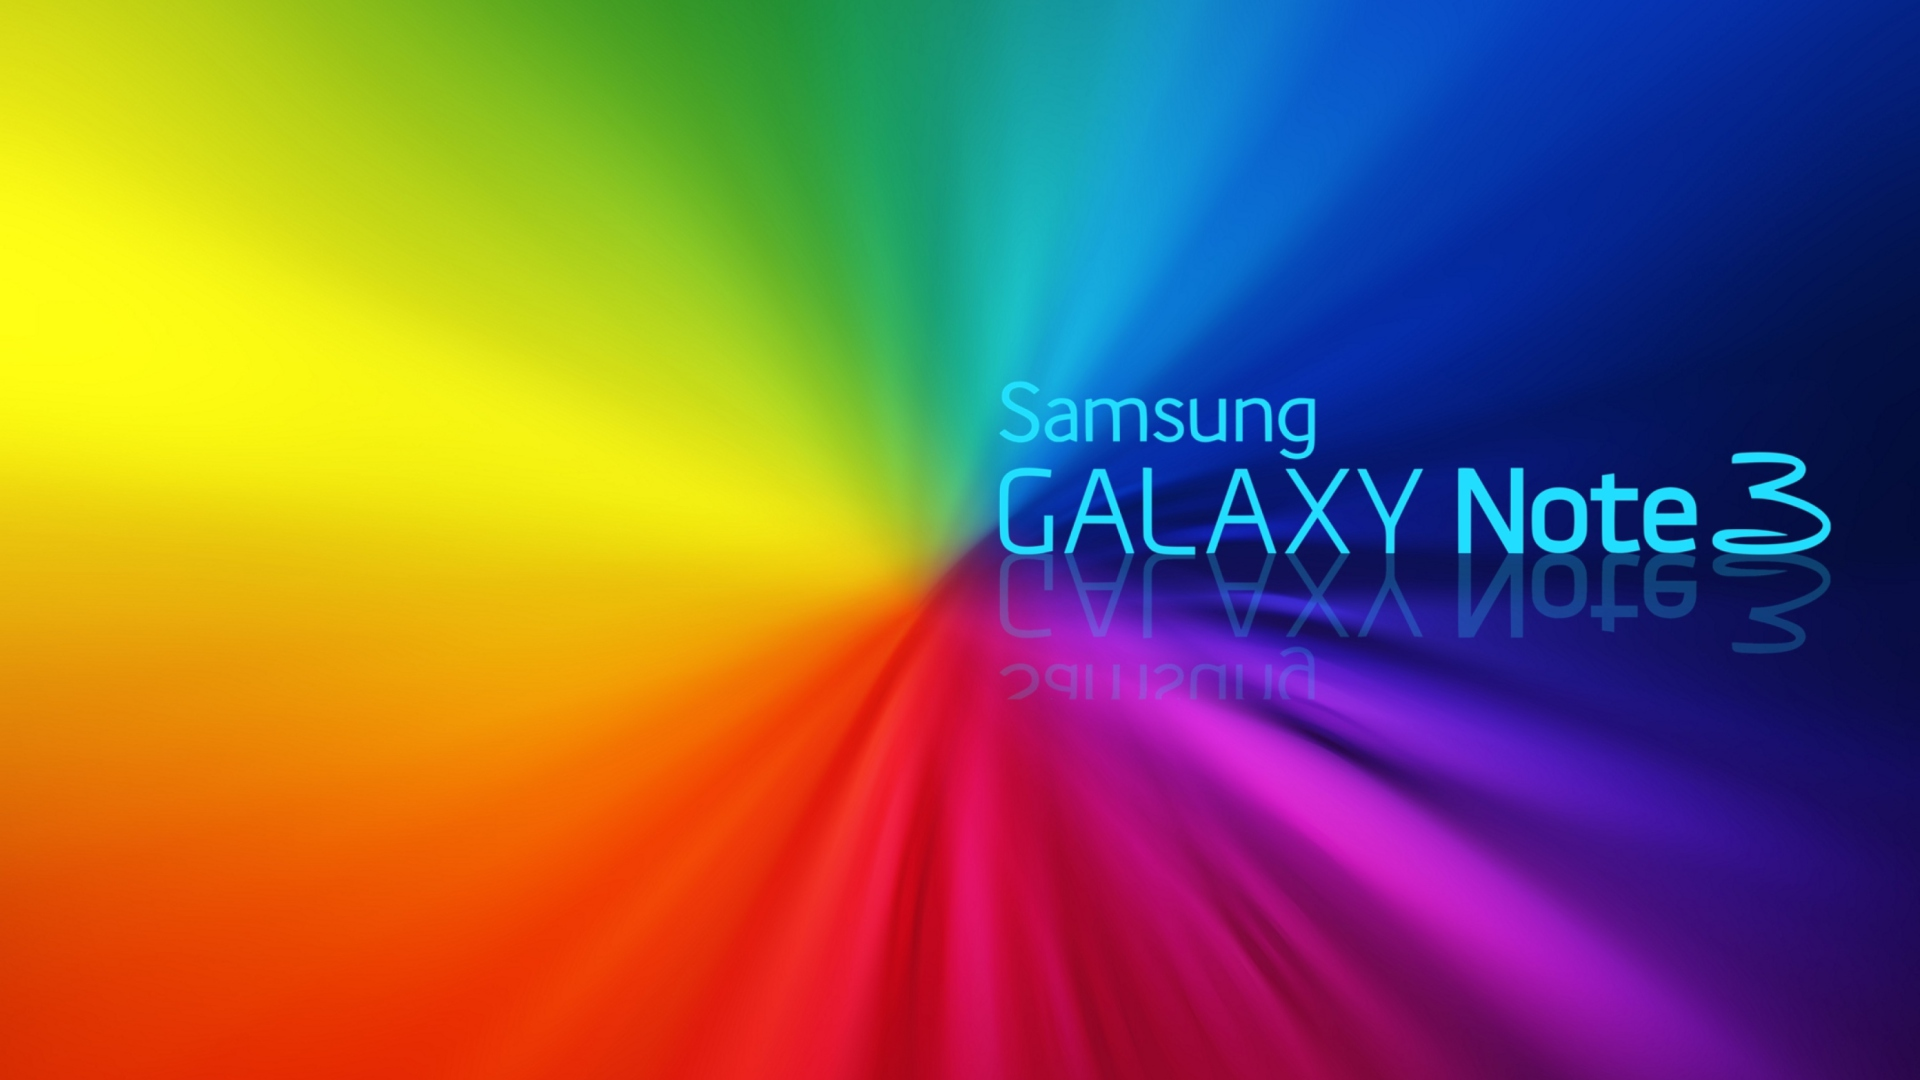 Samsung galaxy note 3 wallpaper for 1920x1080 - Galaxy note 3 wallpaper nature ...